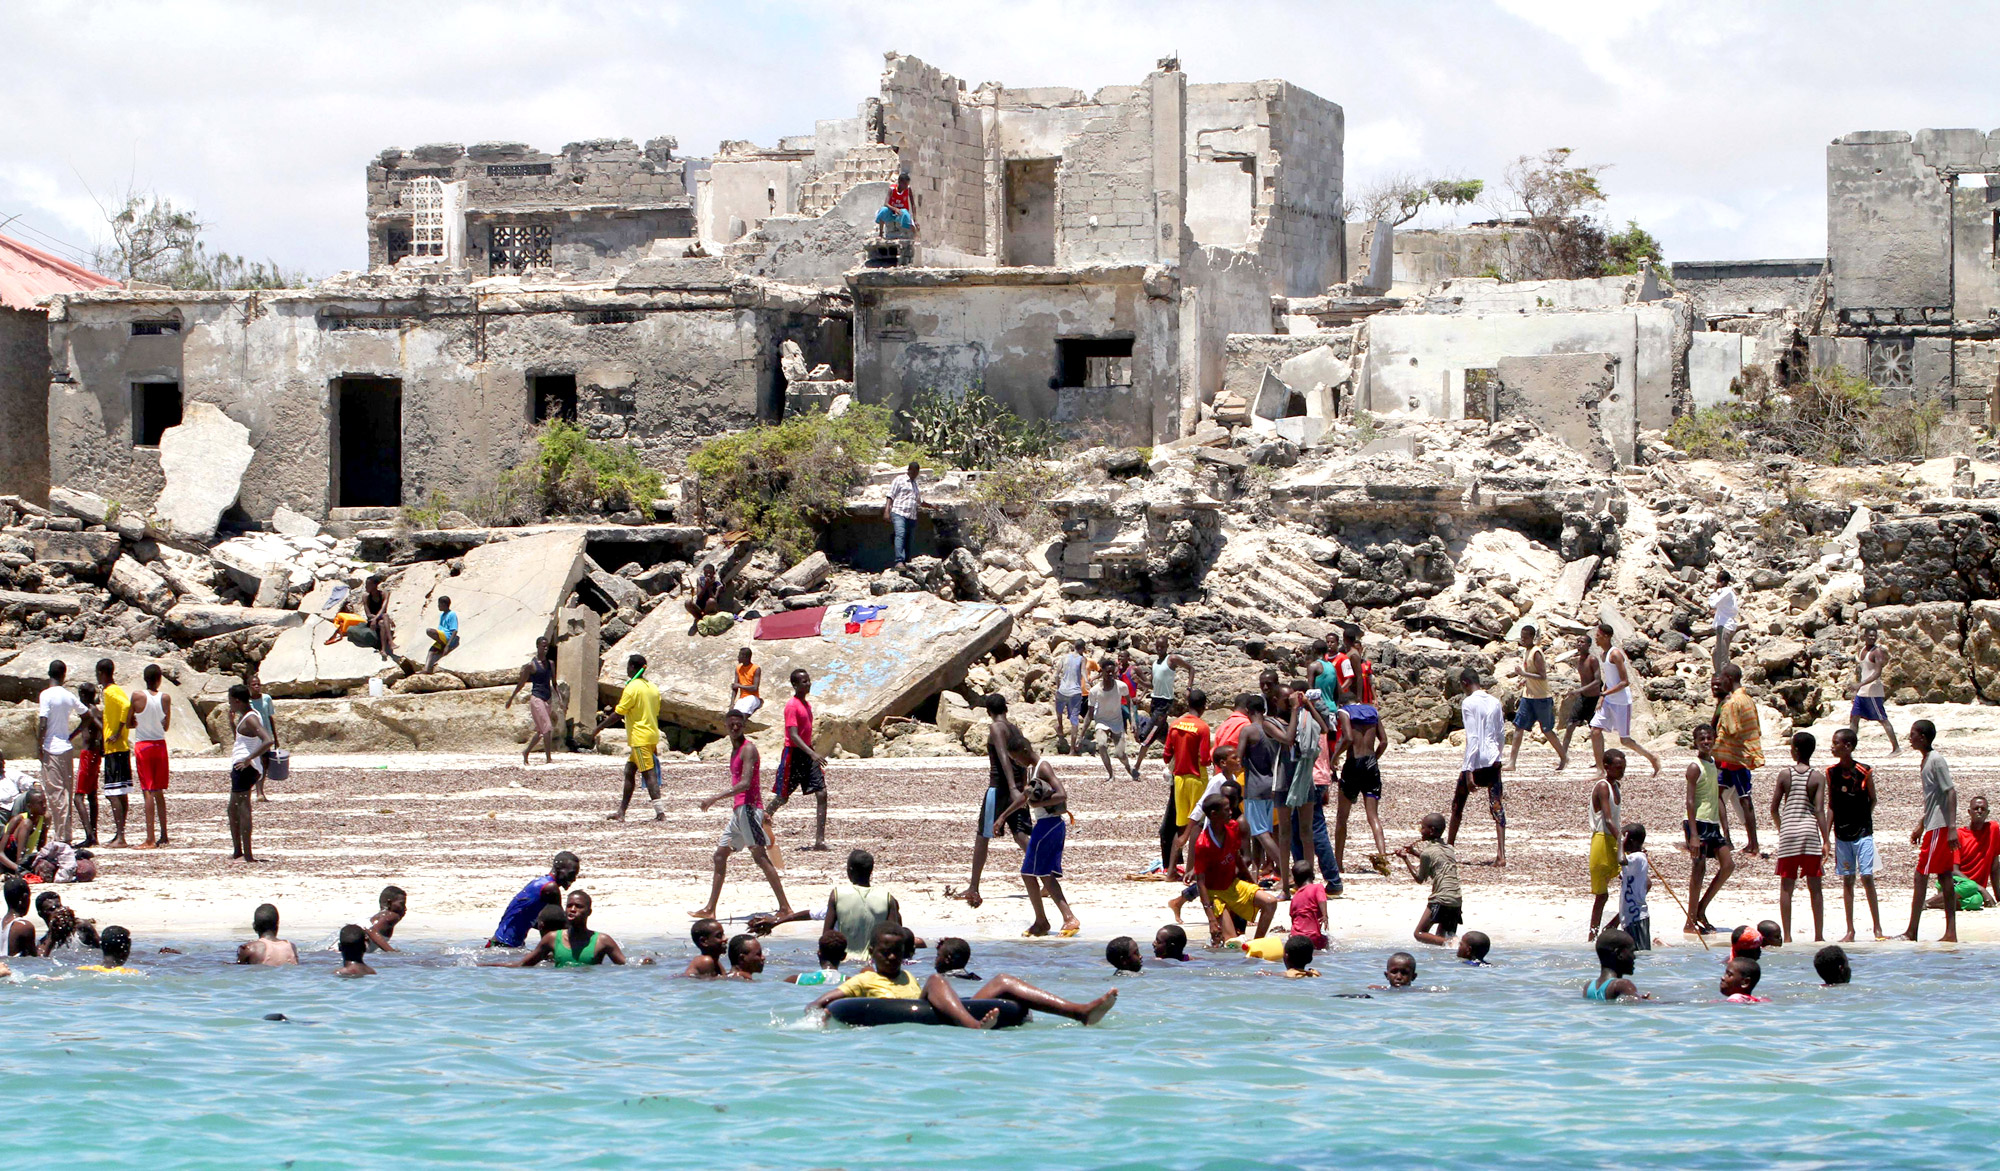 Three tales of Mogadishu: Violence, a booming economy … and now famine